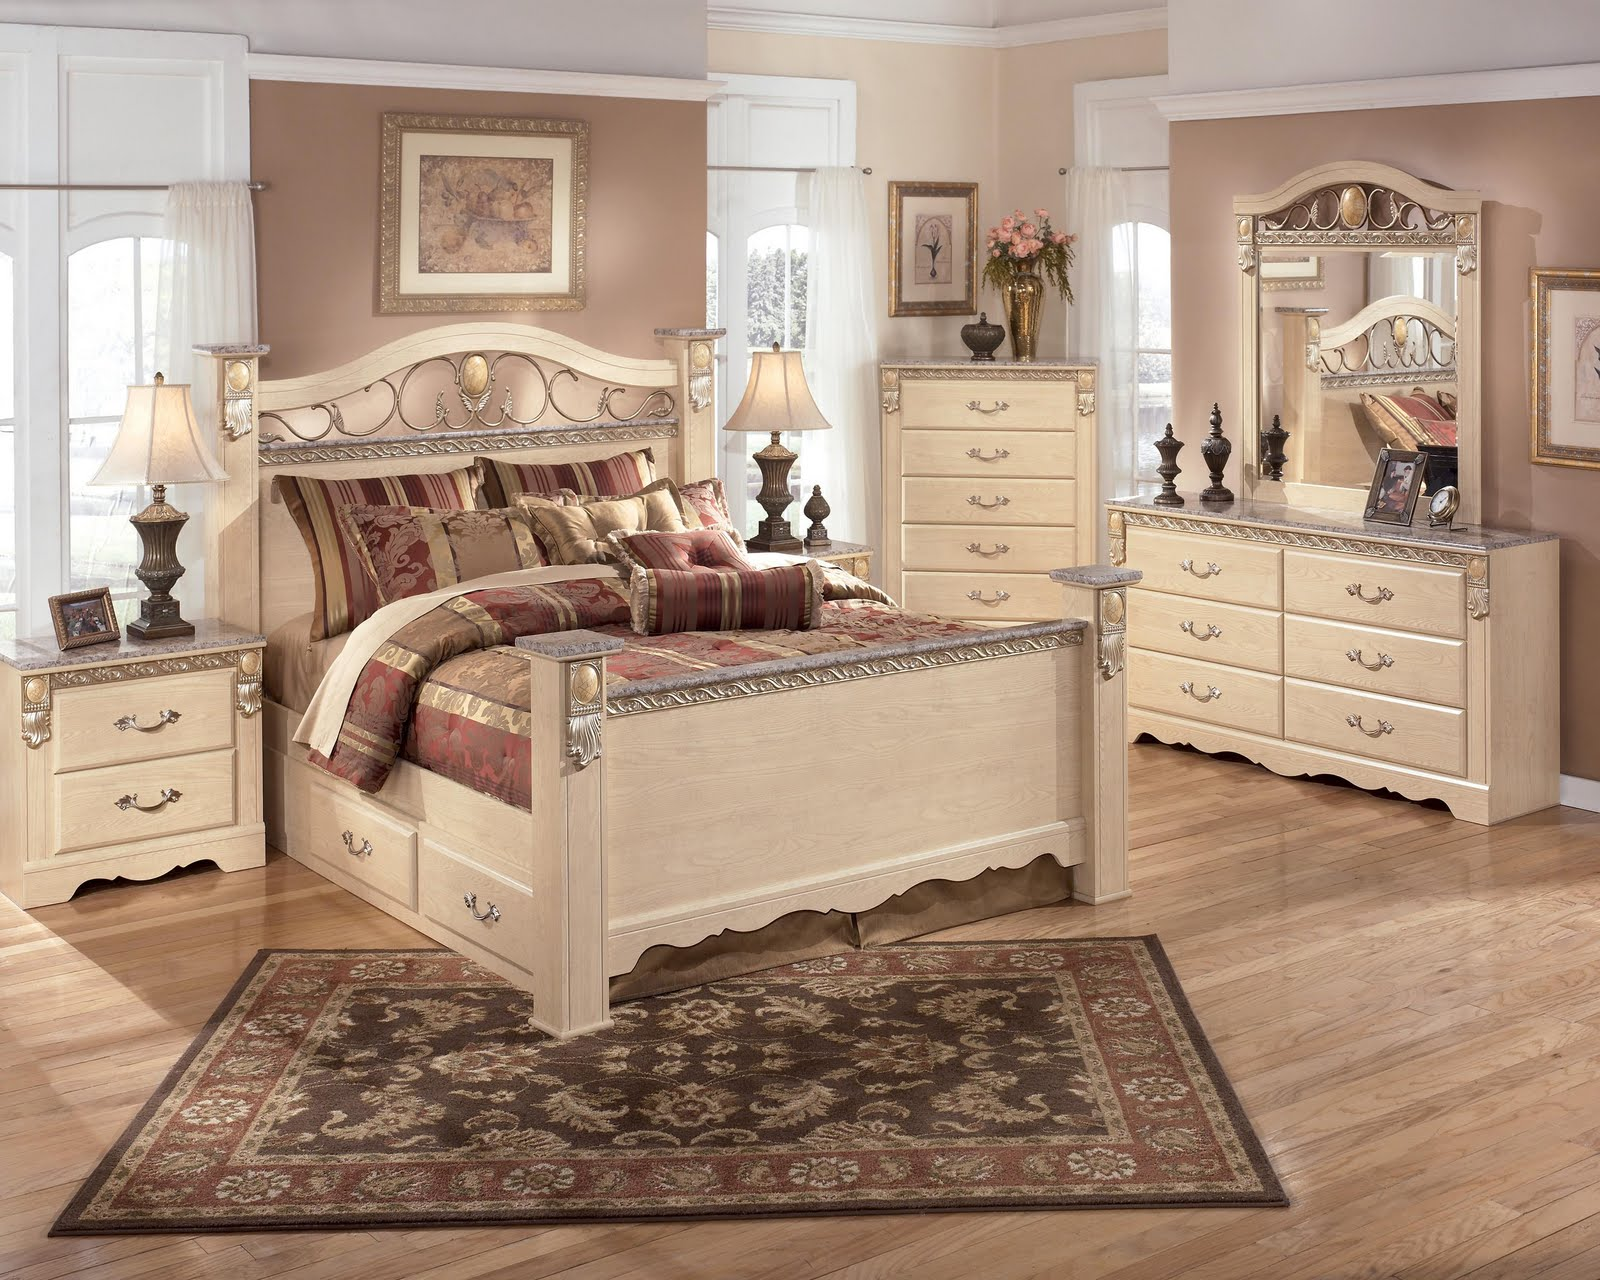 Royal furniture outlet why royal furniture outlet for I furniture warehouse